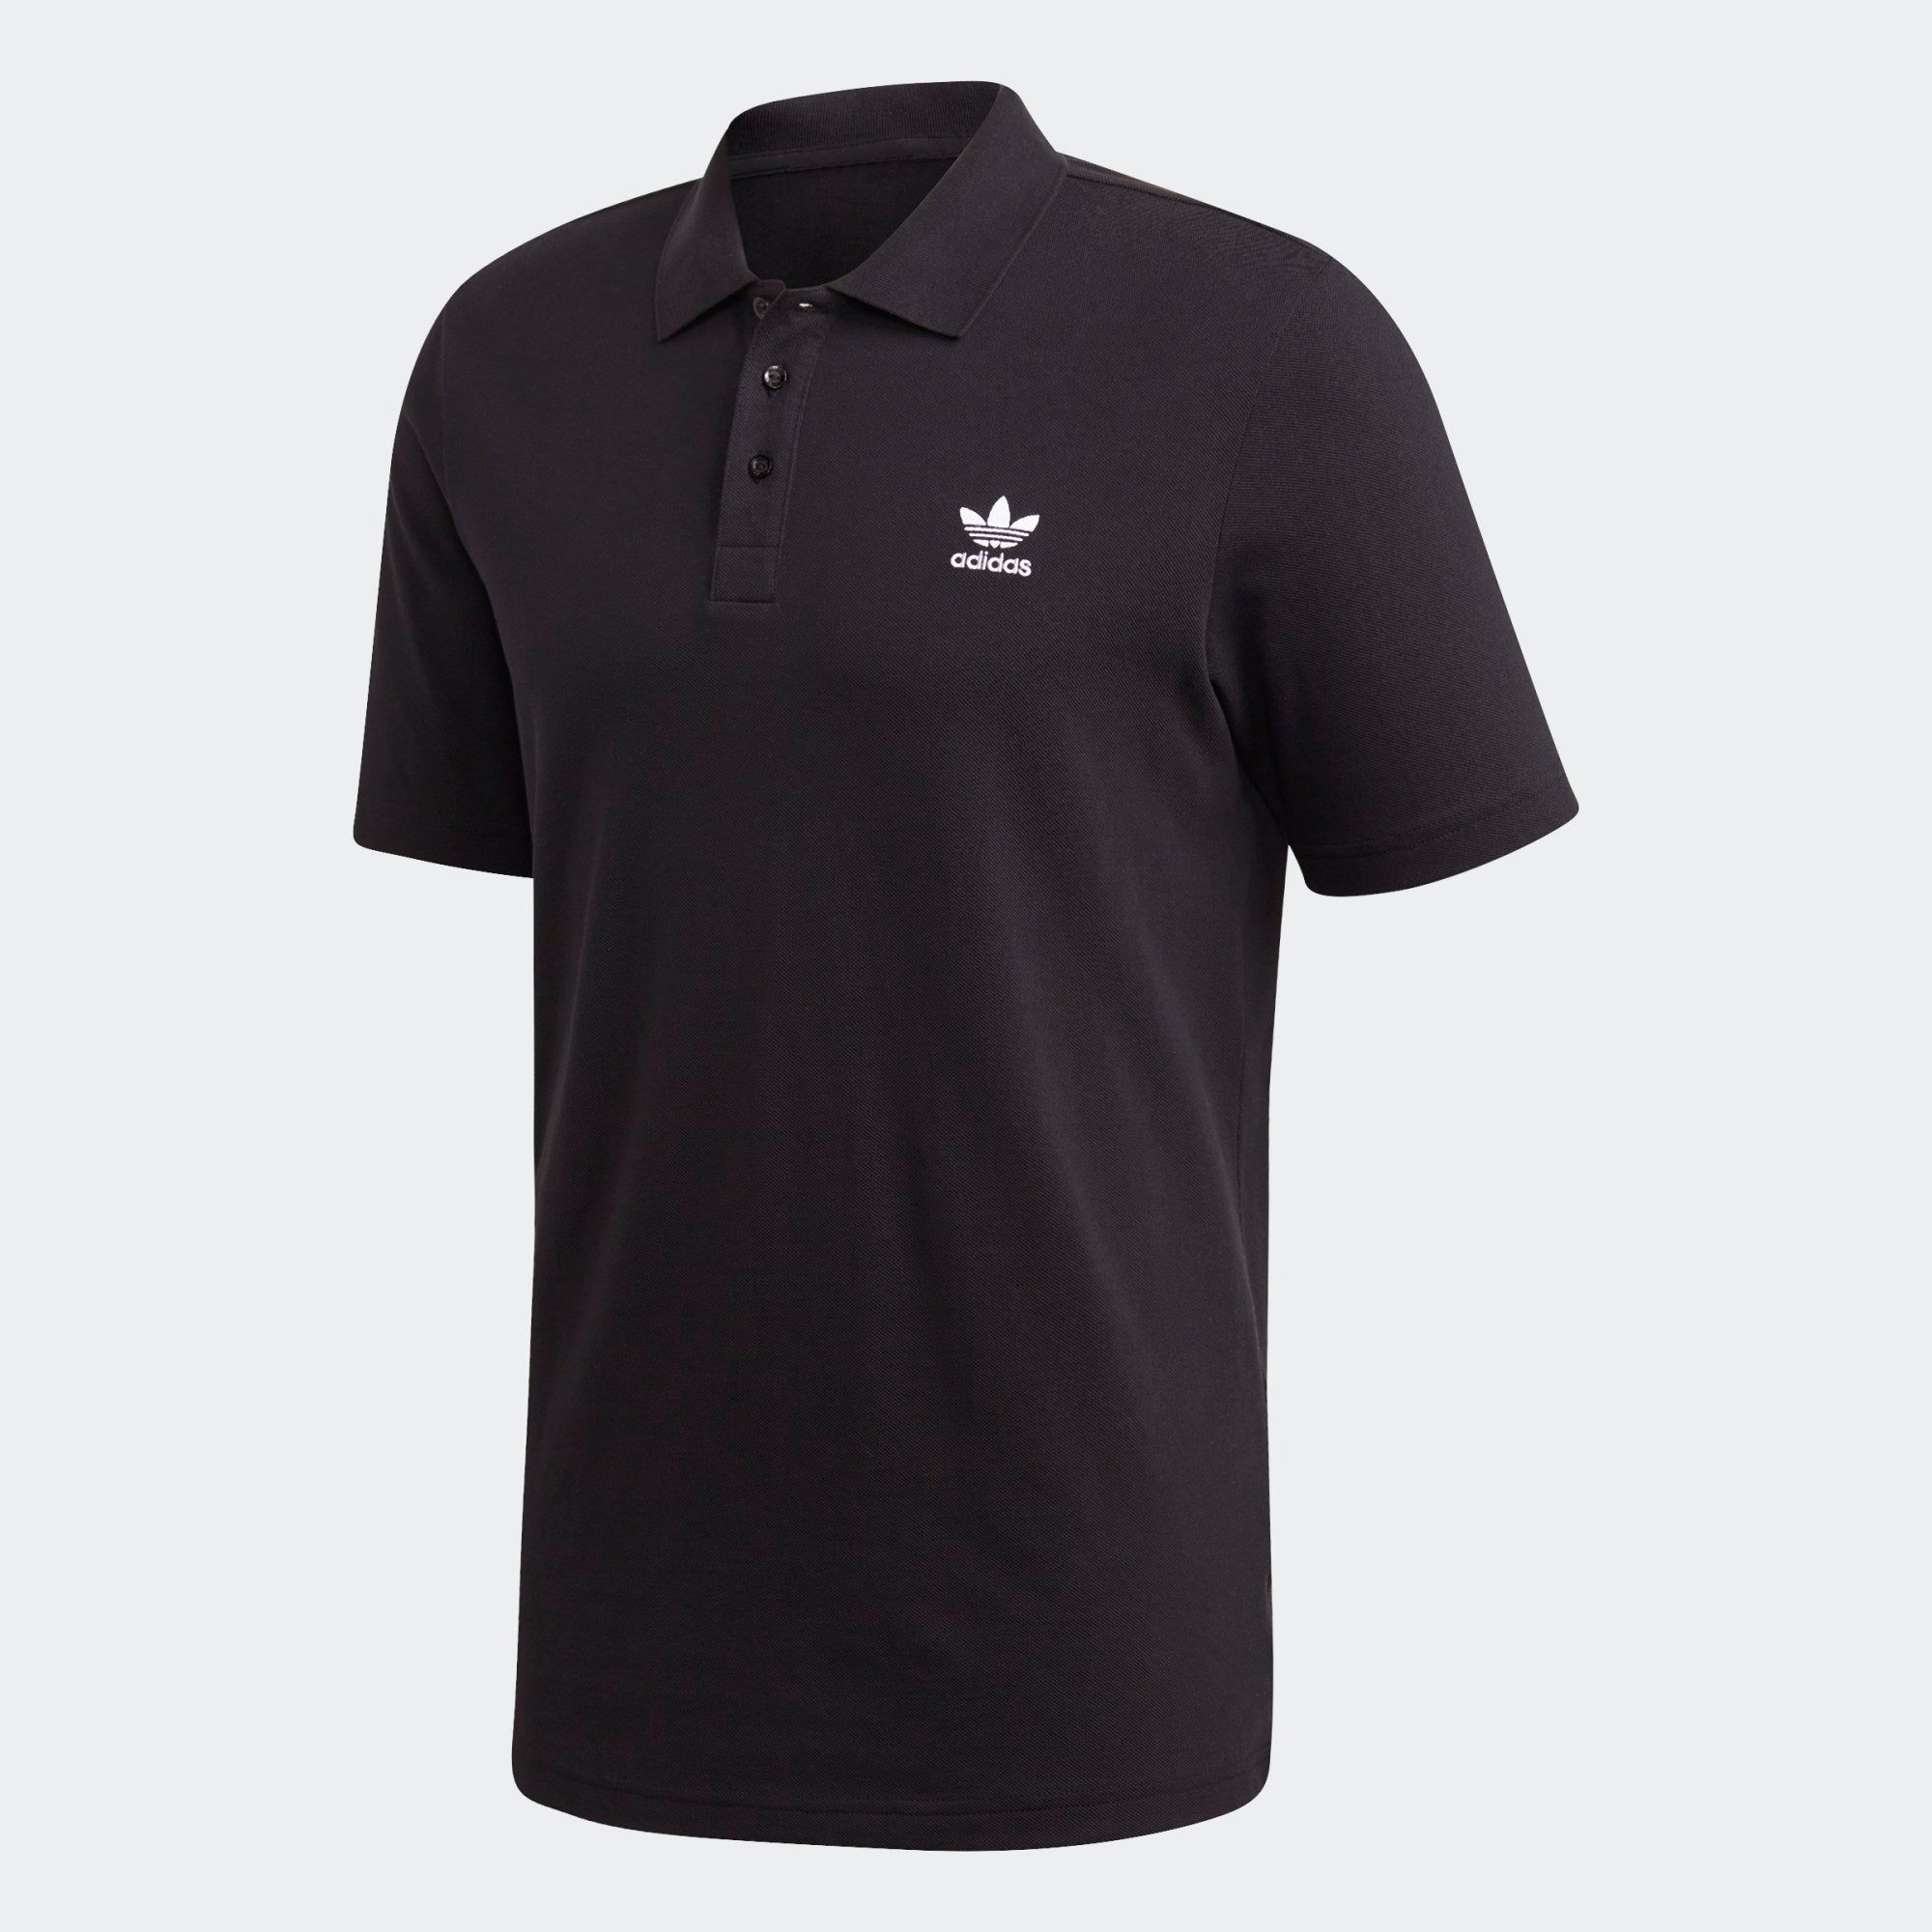 ADIDAS M'S T-SHIRTS TREFOIL ESSENTIALS POLO